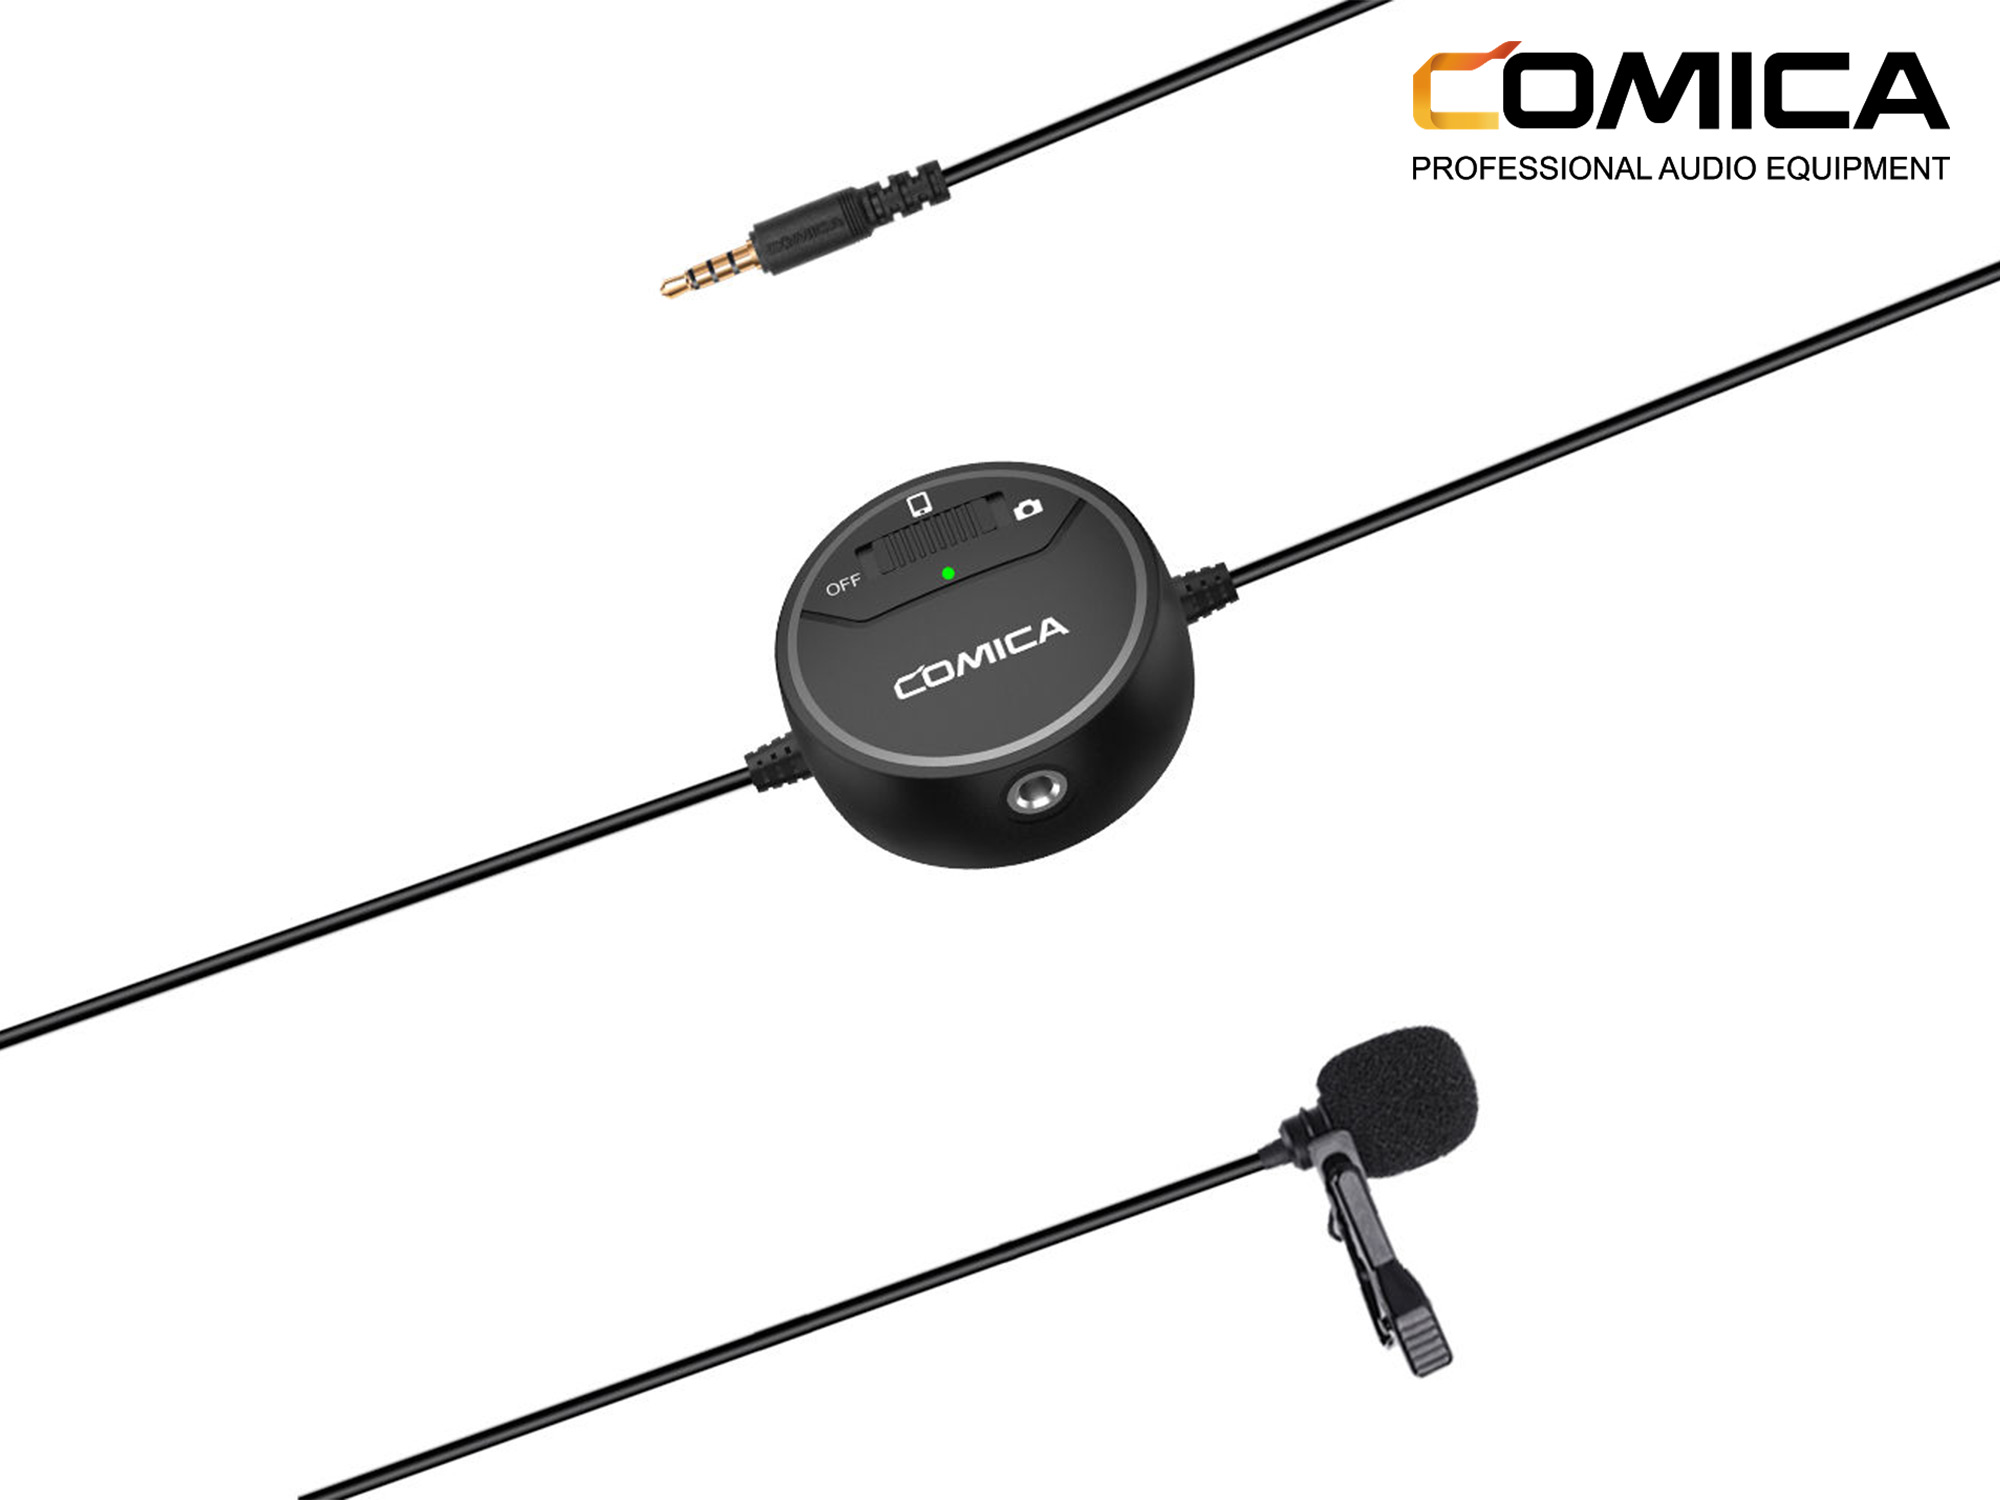 Comica Audio SIG.LAV V03 Omnidirectional Lavalier Microphone with Monitoring for DSLR Cameras and Smartphones